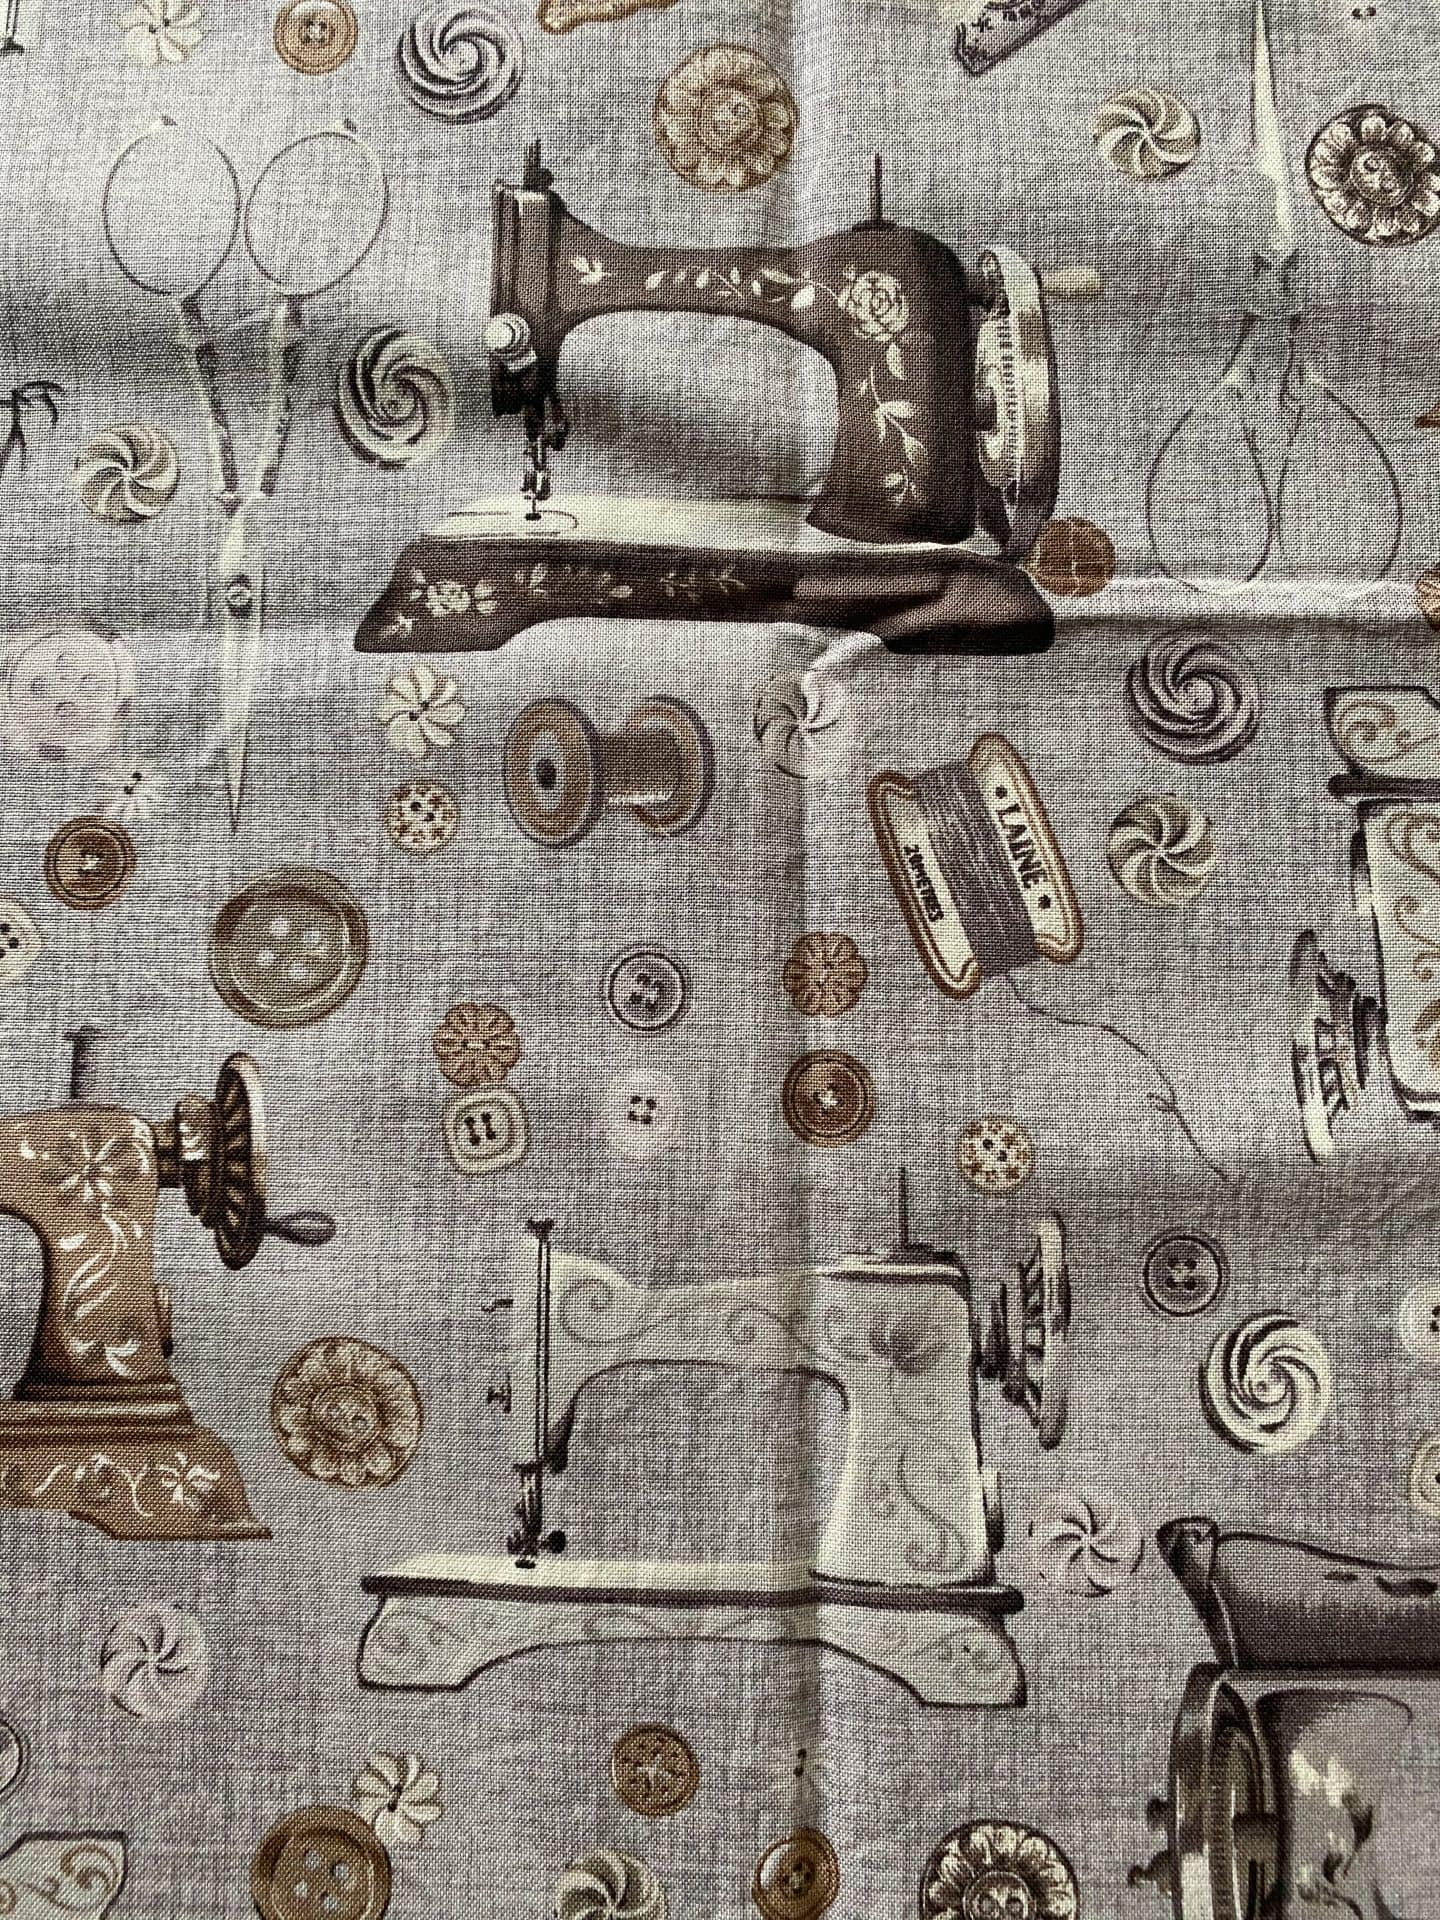 Image of fabric with vintage sewing machines, thread spools, and buttons as print against a grayish background.